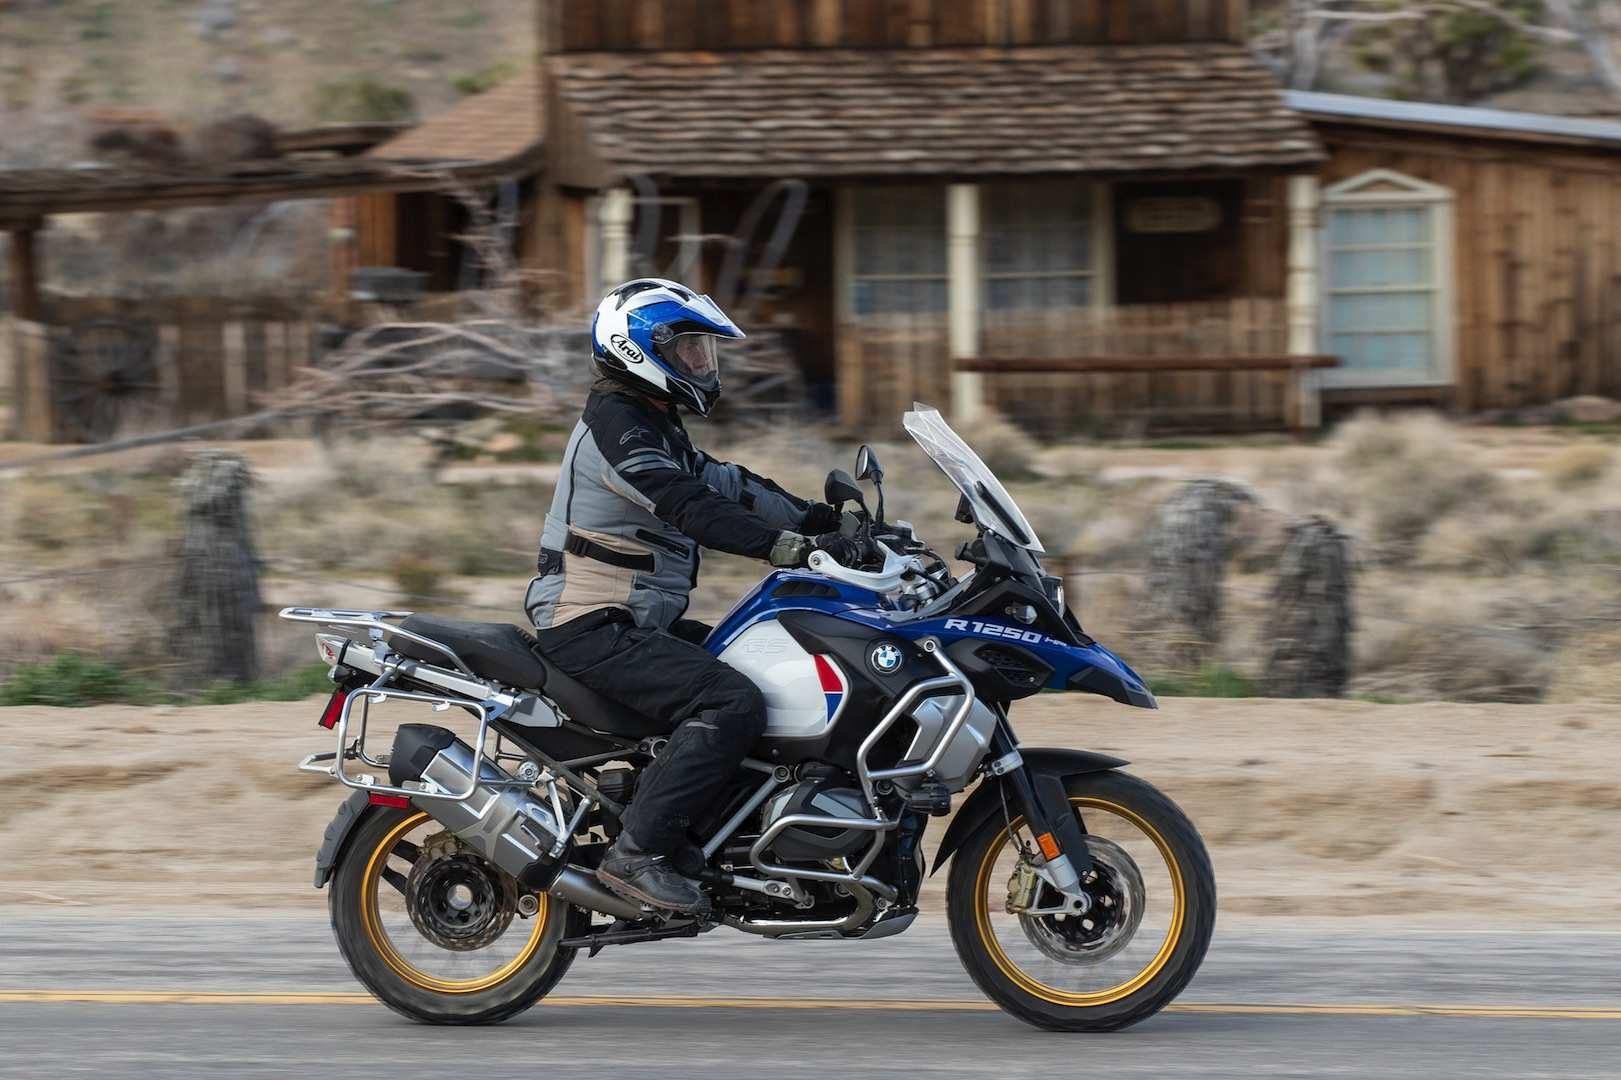 24 Best Review Bmw Gs Adventure 2020 Redesign and Concept with Bmw Gs Adventure 2020